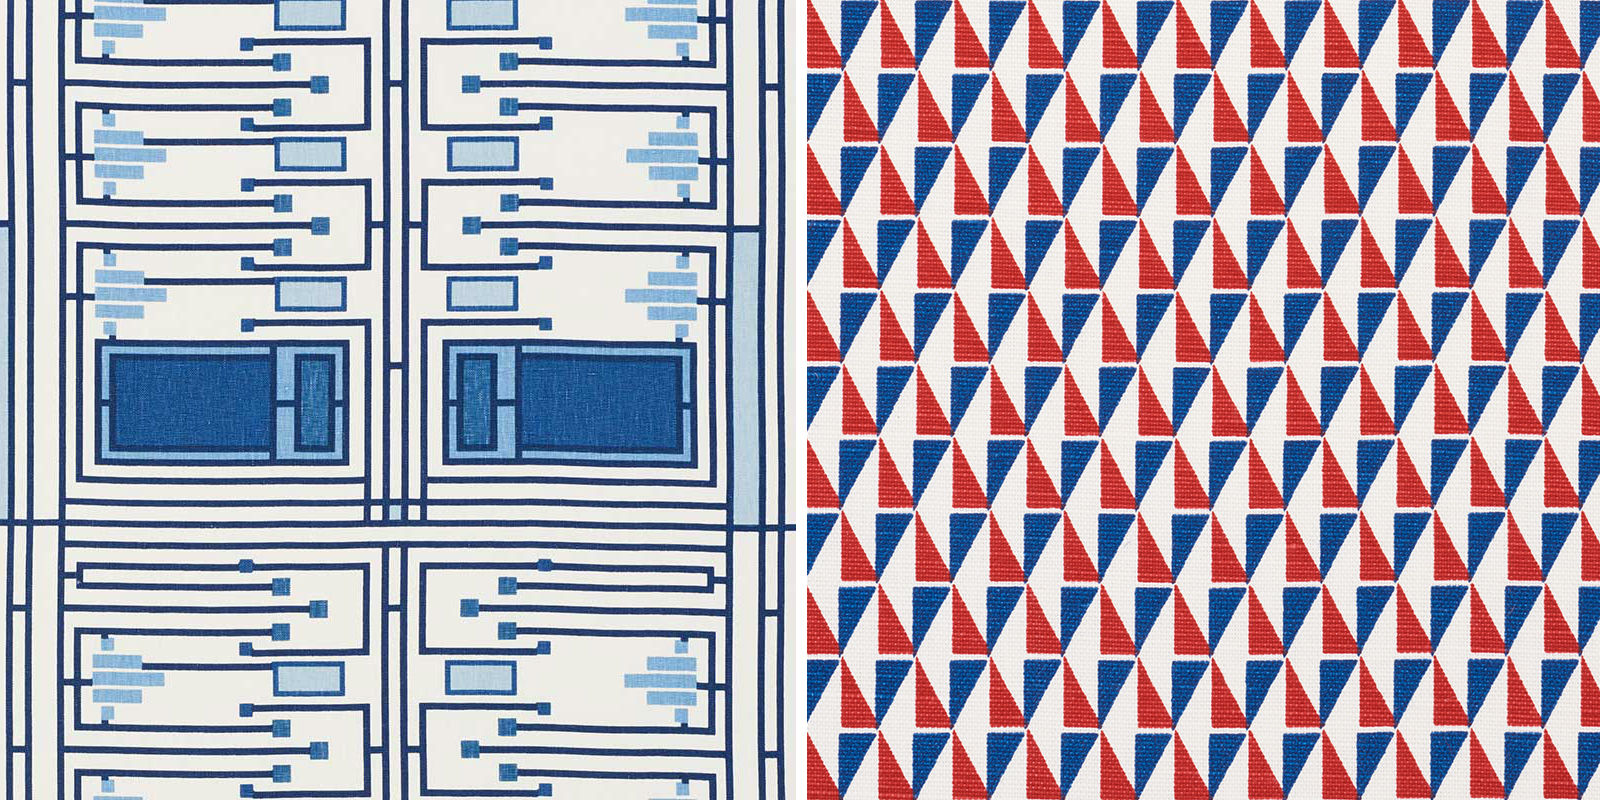 Frank Lloyd Wright's textile designs from 1955 available to buy now